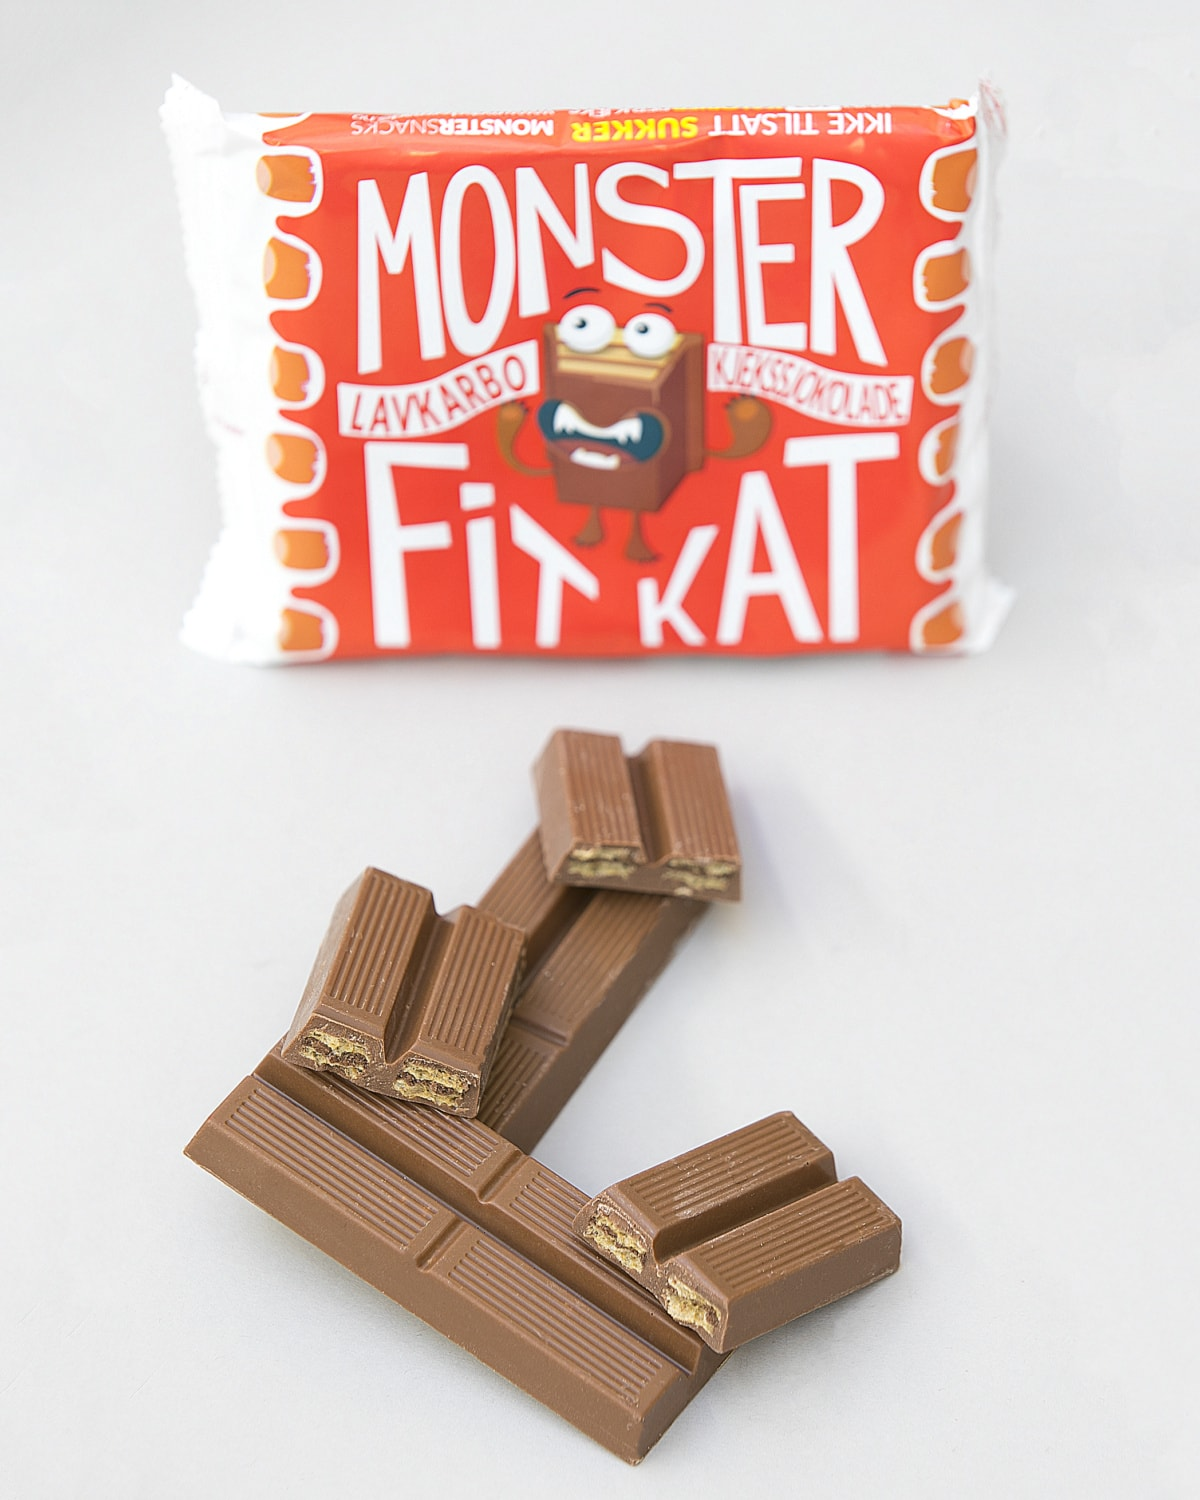 Monster Kit Kat c